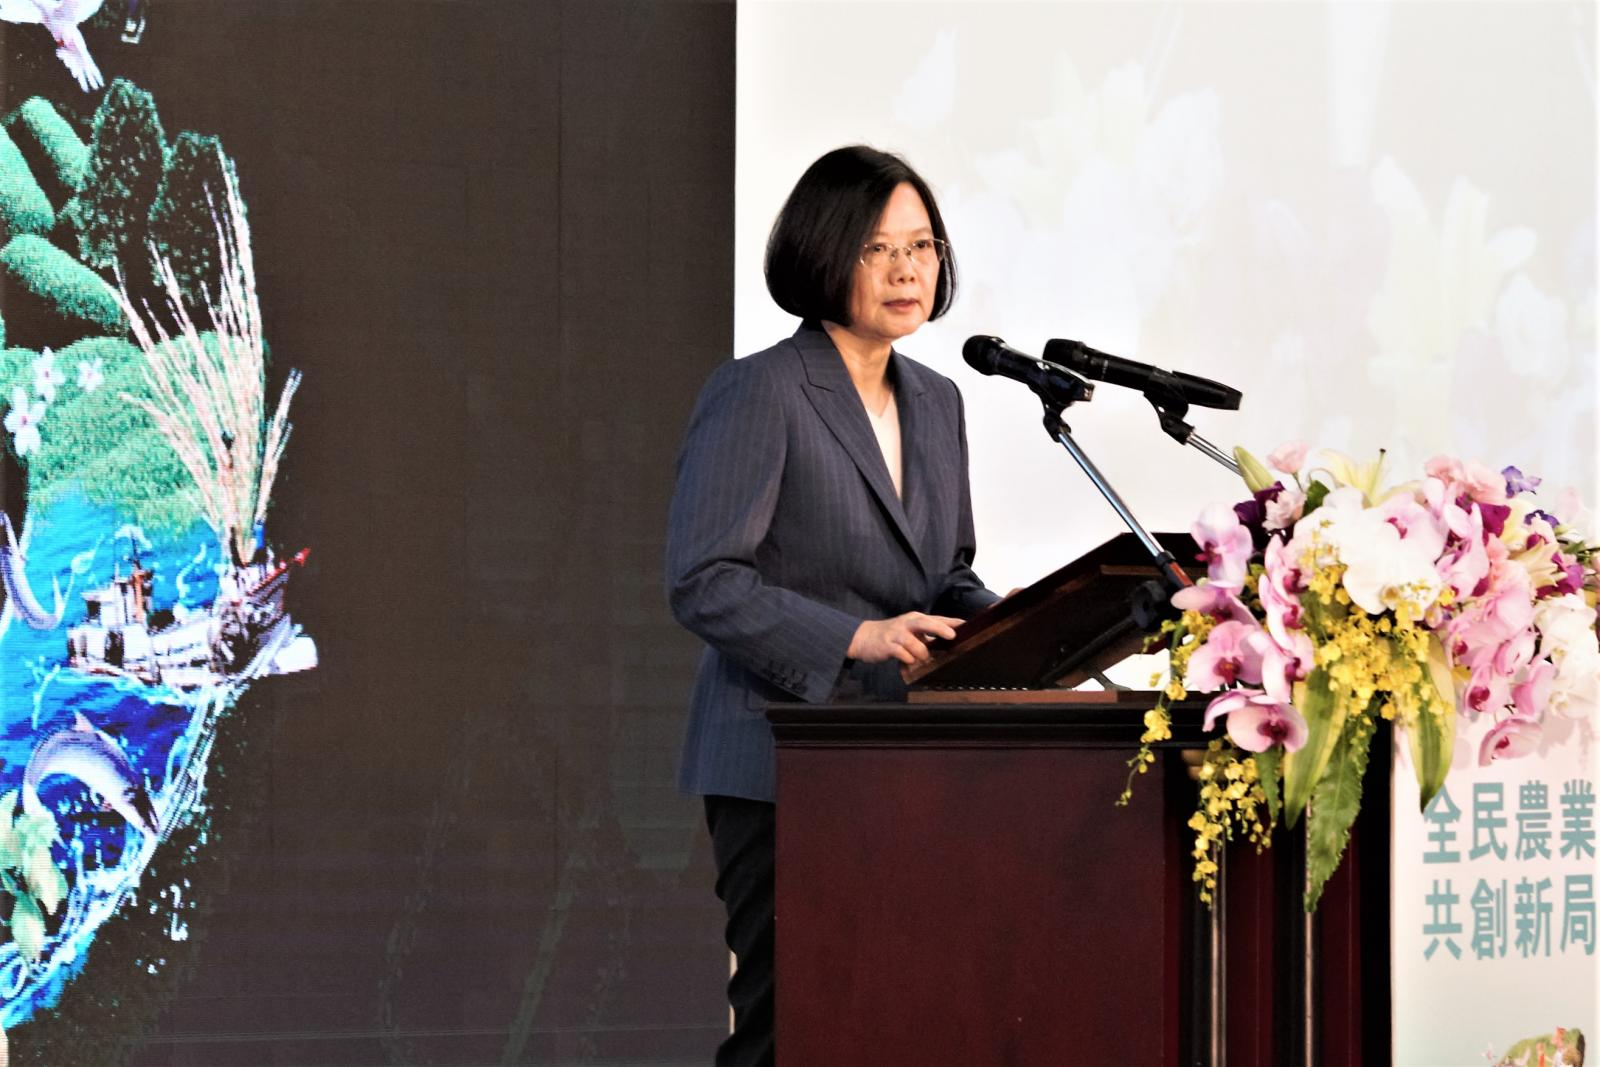 President Tsai Ing-Wen delivers her opening remarks at the 6th National Agriculture Congress